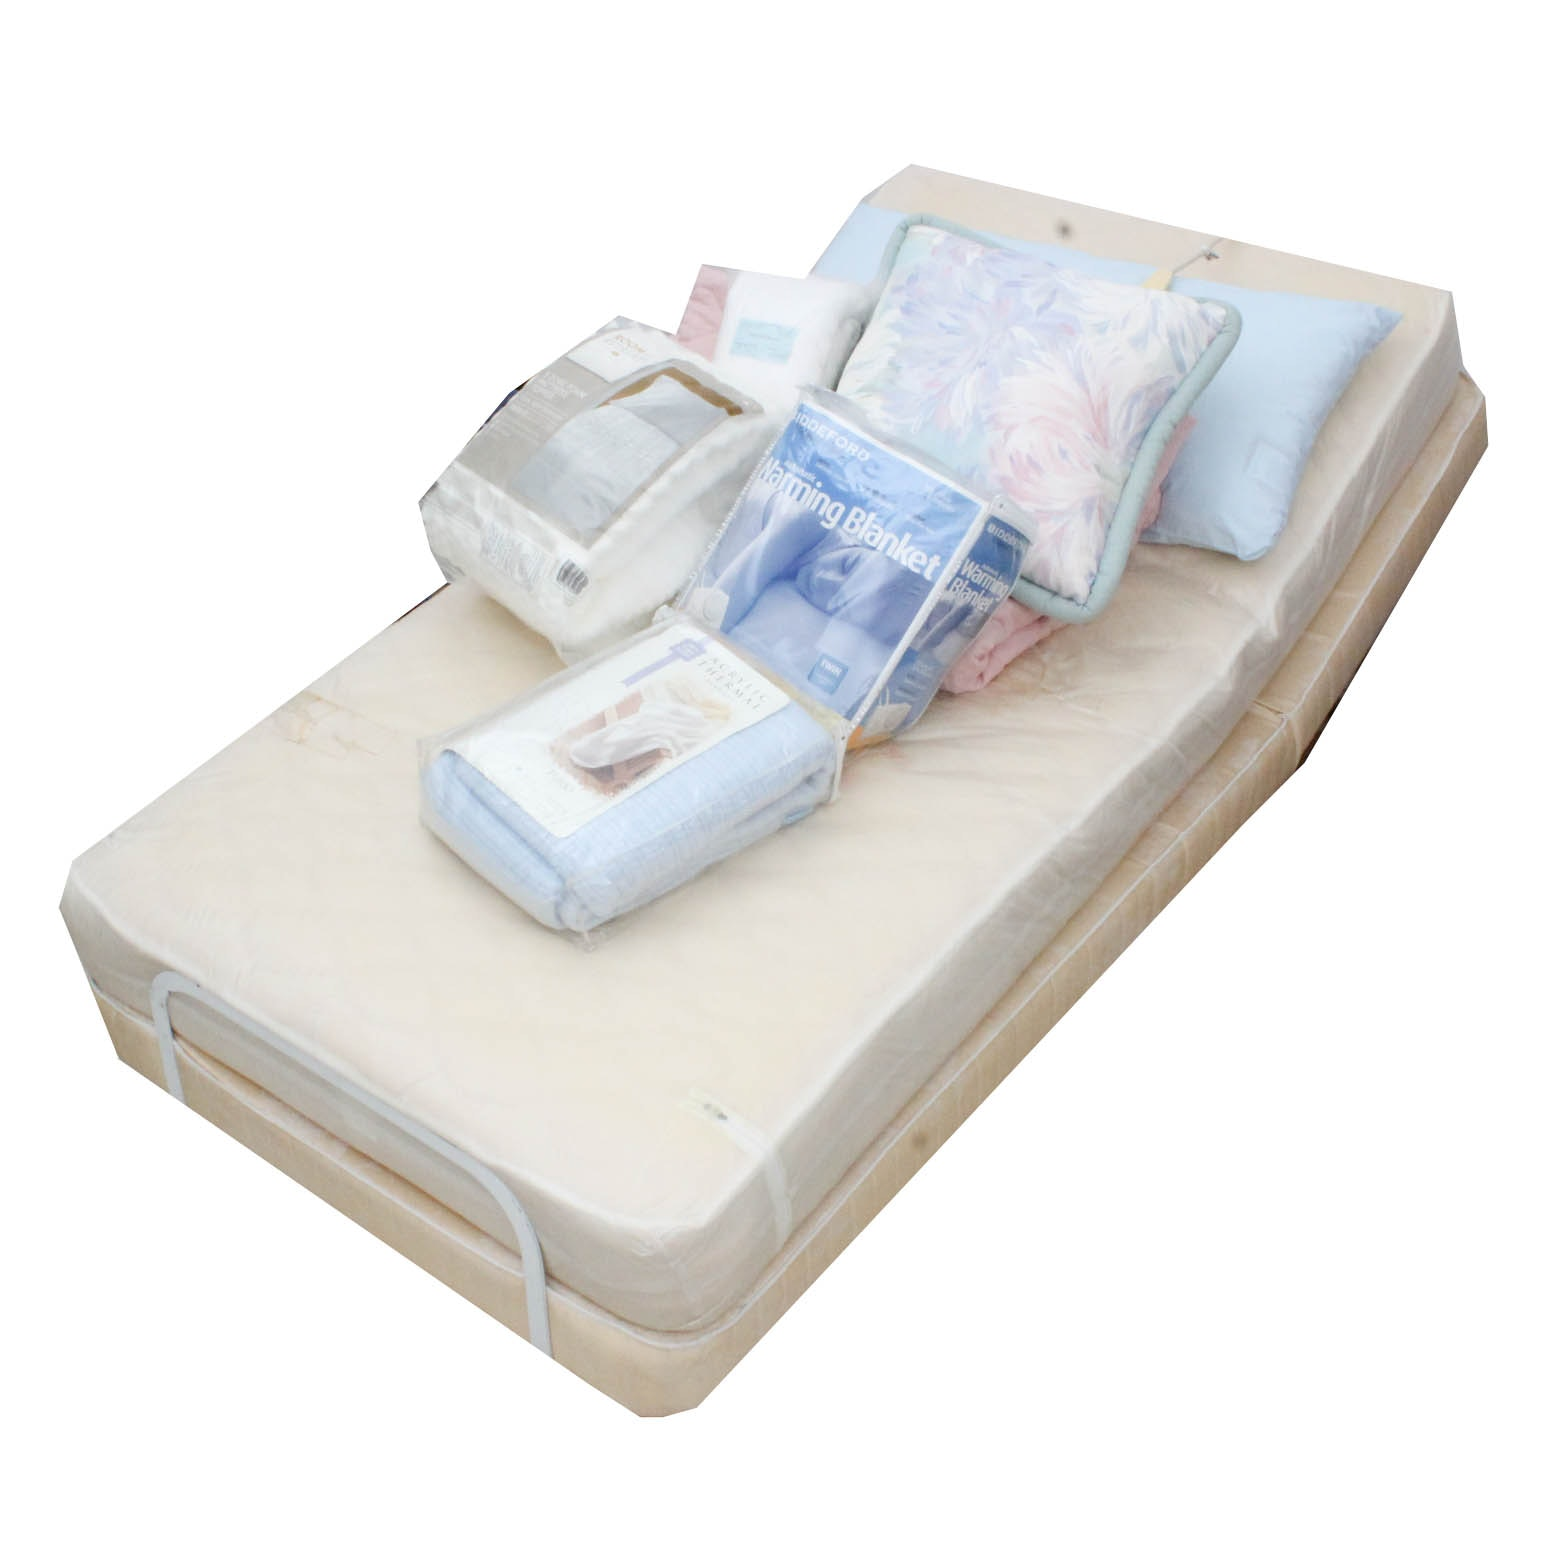 Twin Size Adjustable Base Bed